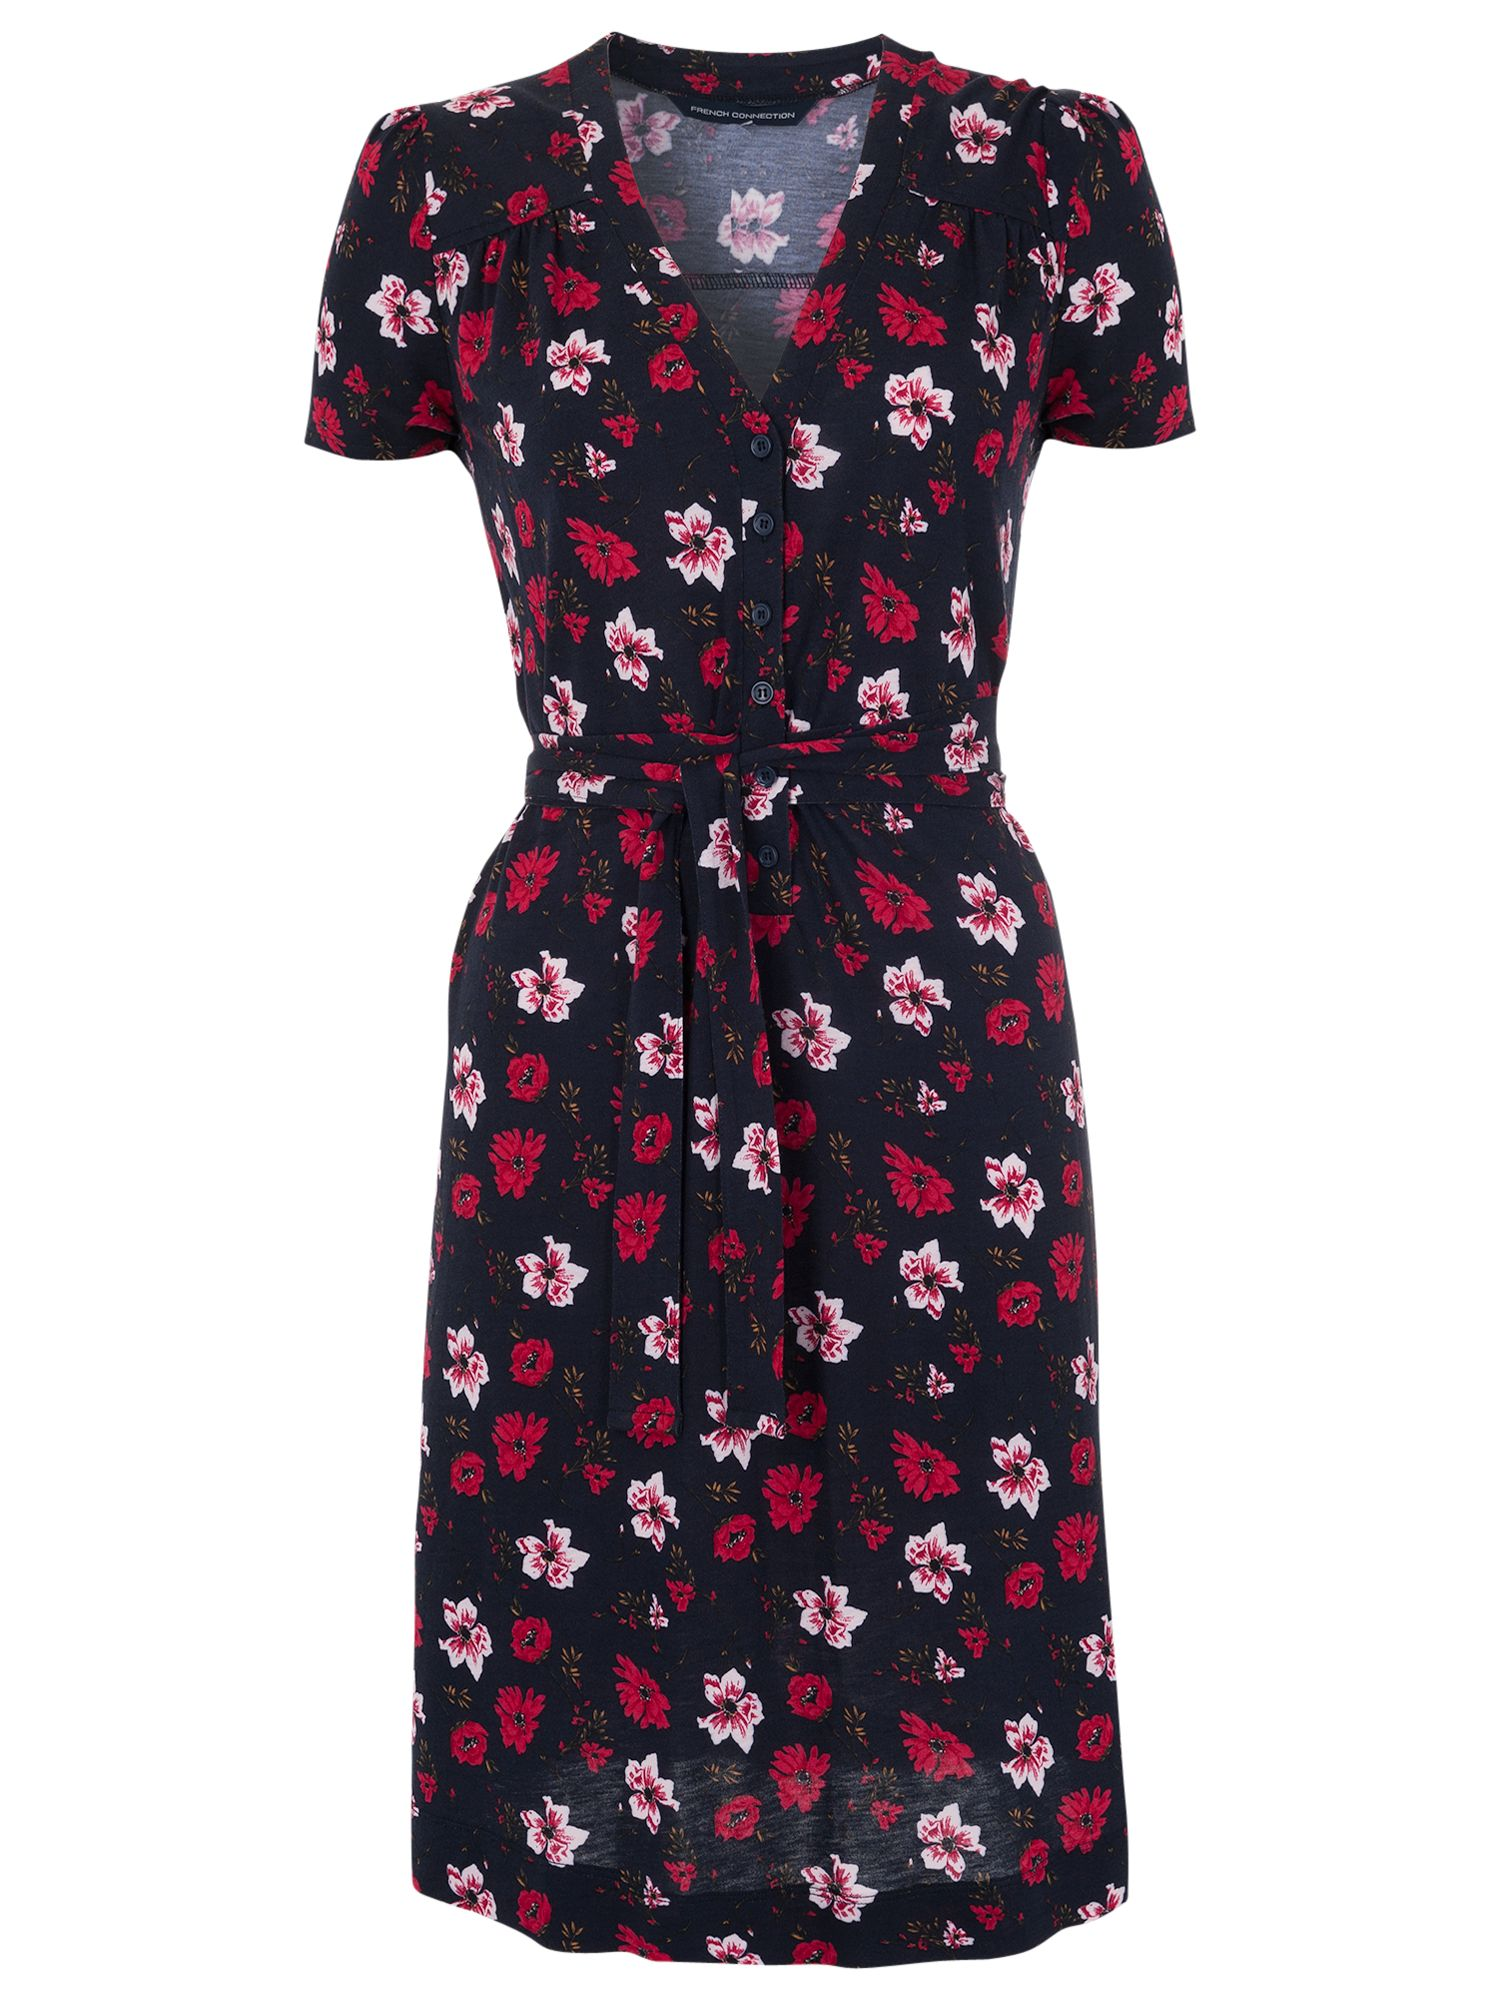 french connection bloomsbury tea dress utility blue/warm crimson, french, connection, bloomsbury, tea, dress, utility, blue/warm, crimson, french connection, 8|10|16|12|14|6, women, womens dresses, 1525298